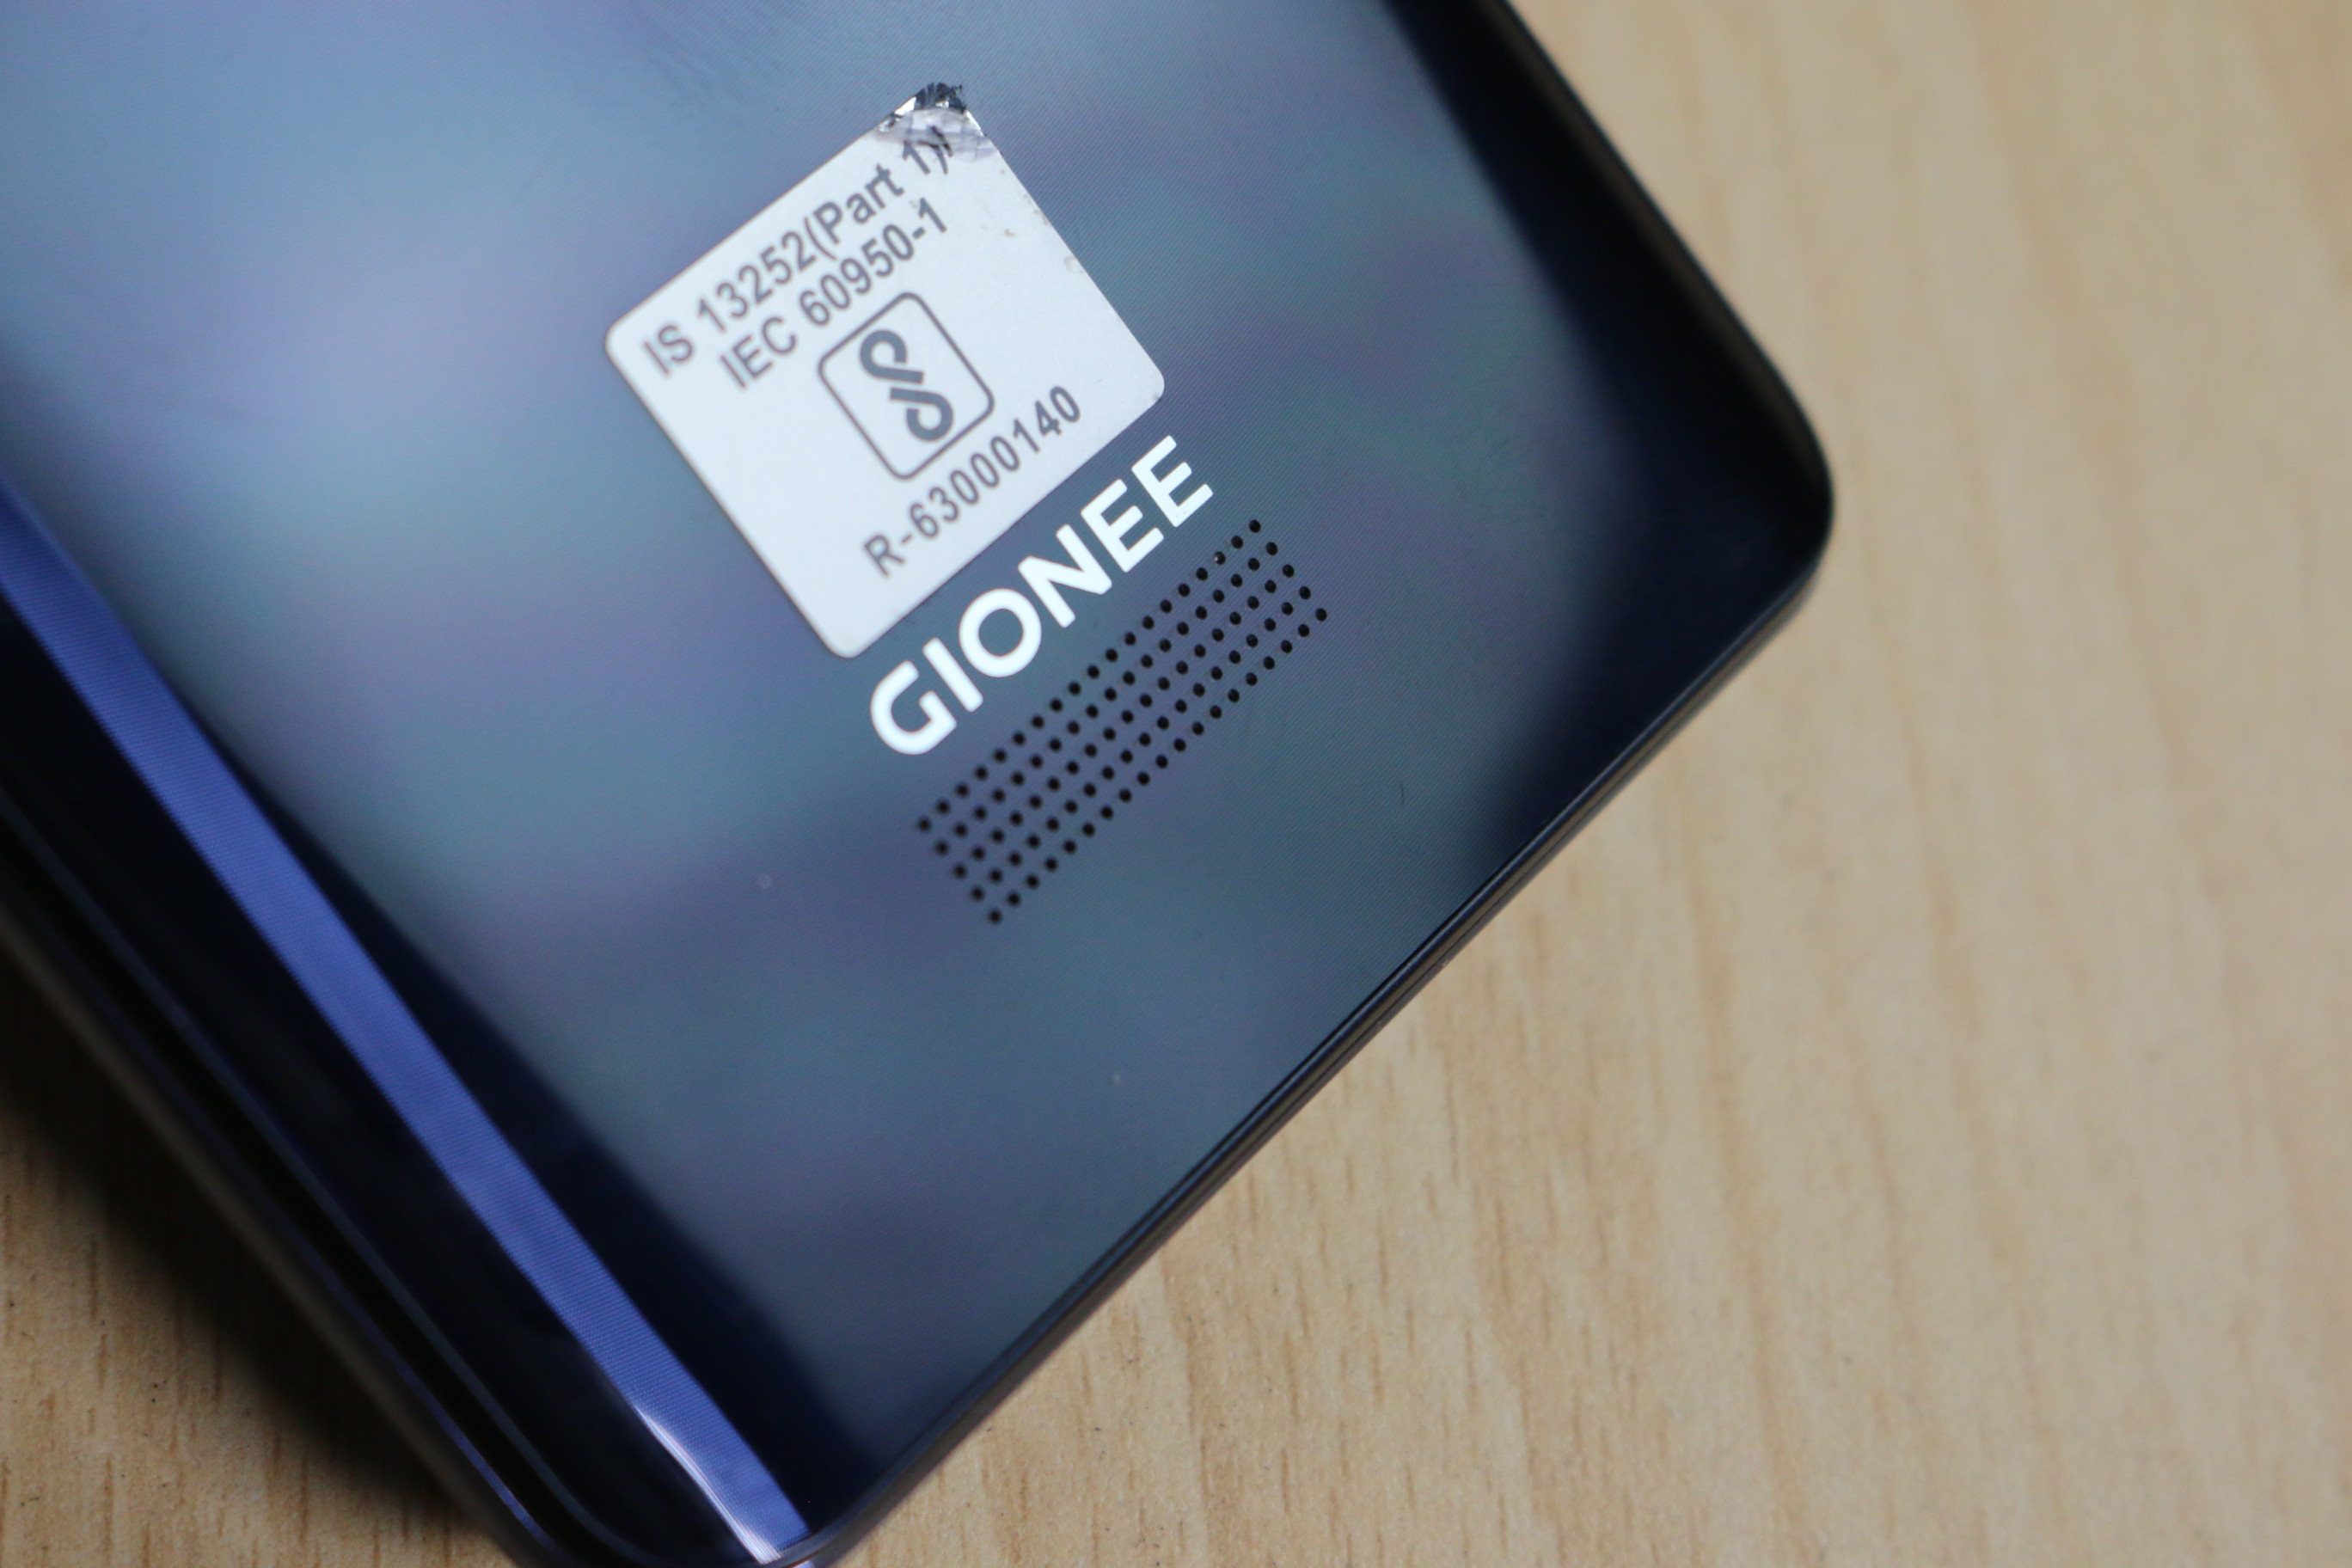 Gionee P7 Max Unboxing, Quick Review, Gaming, Battery and